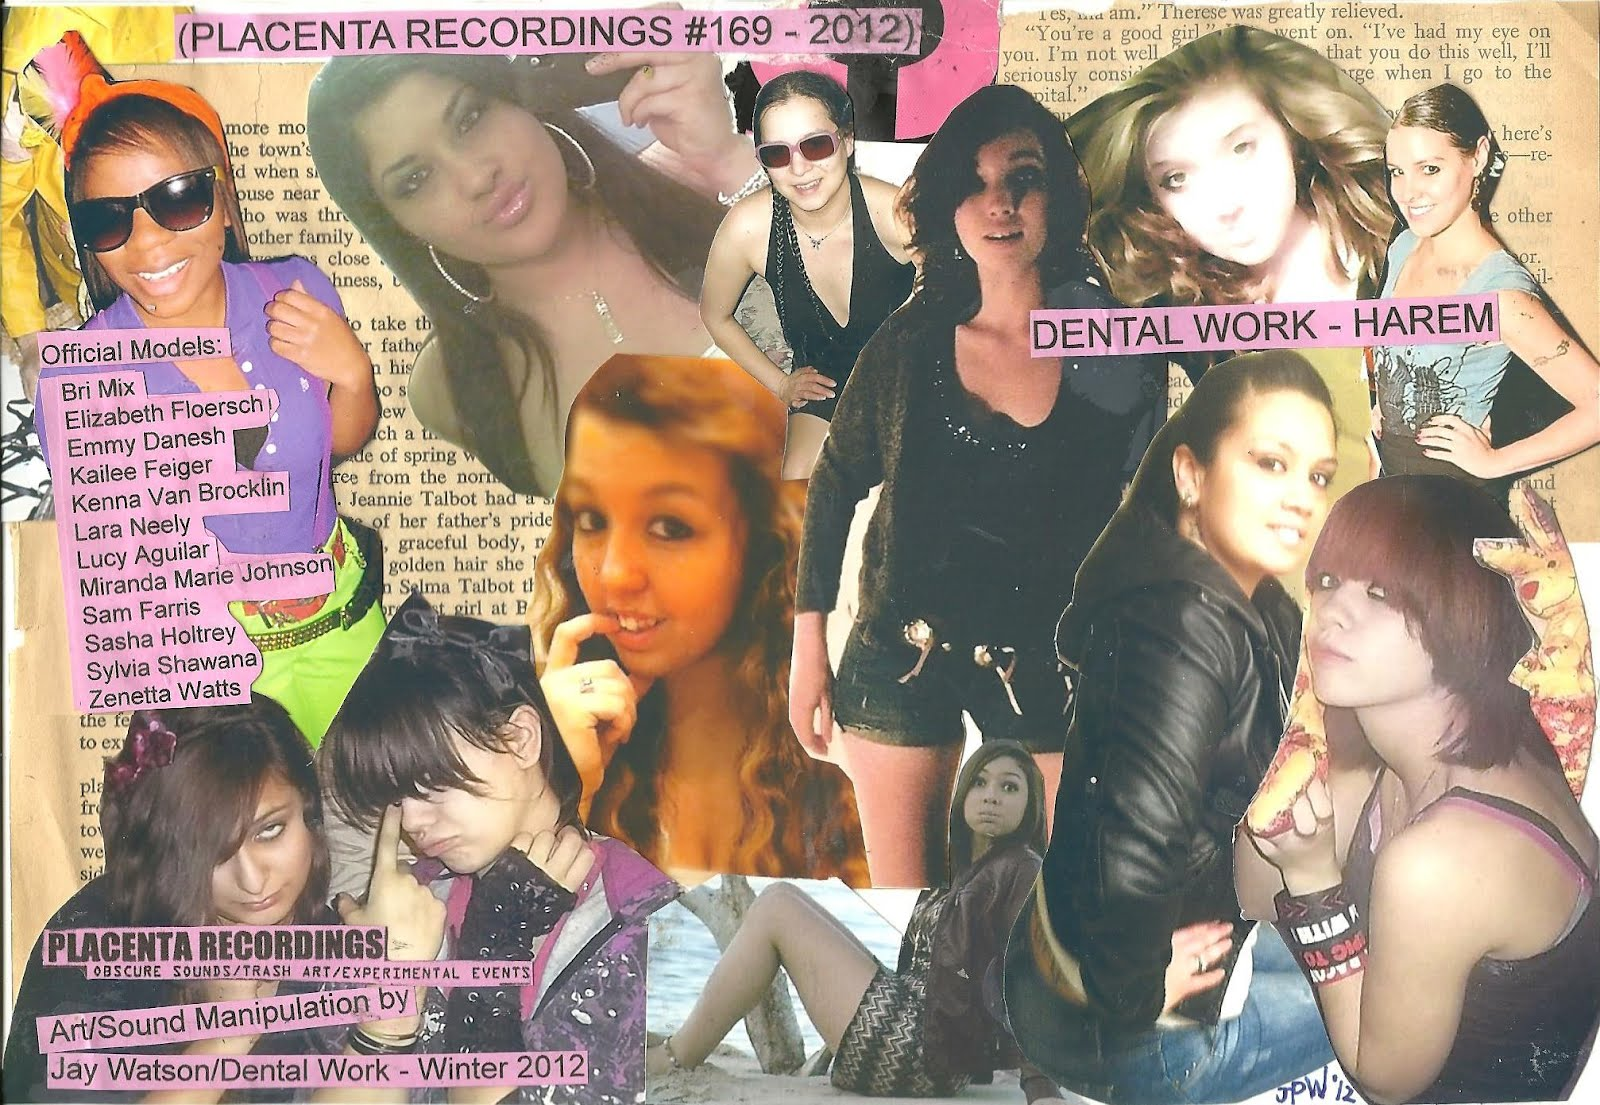 Placenta Recordings February 2012 Casio Ck 1 Circuit Bent Diabolical Happy Valentines Day Dental Work Harem Cd Available Now 169